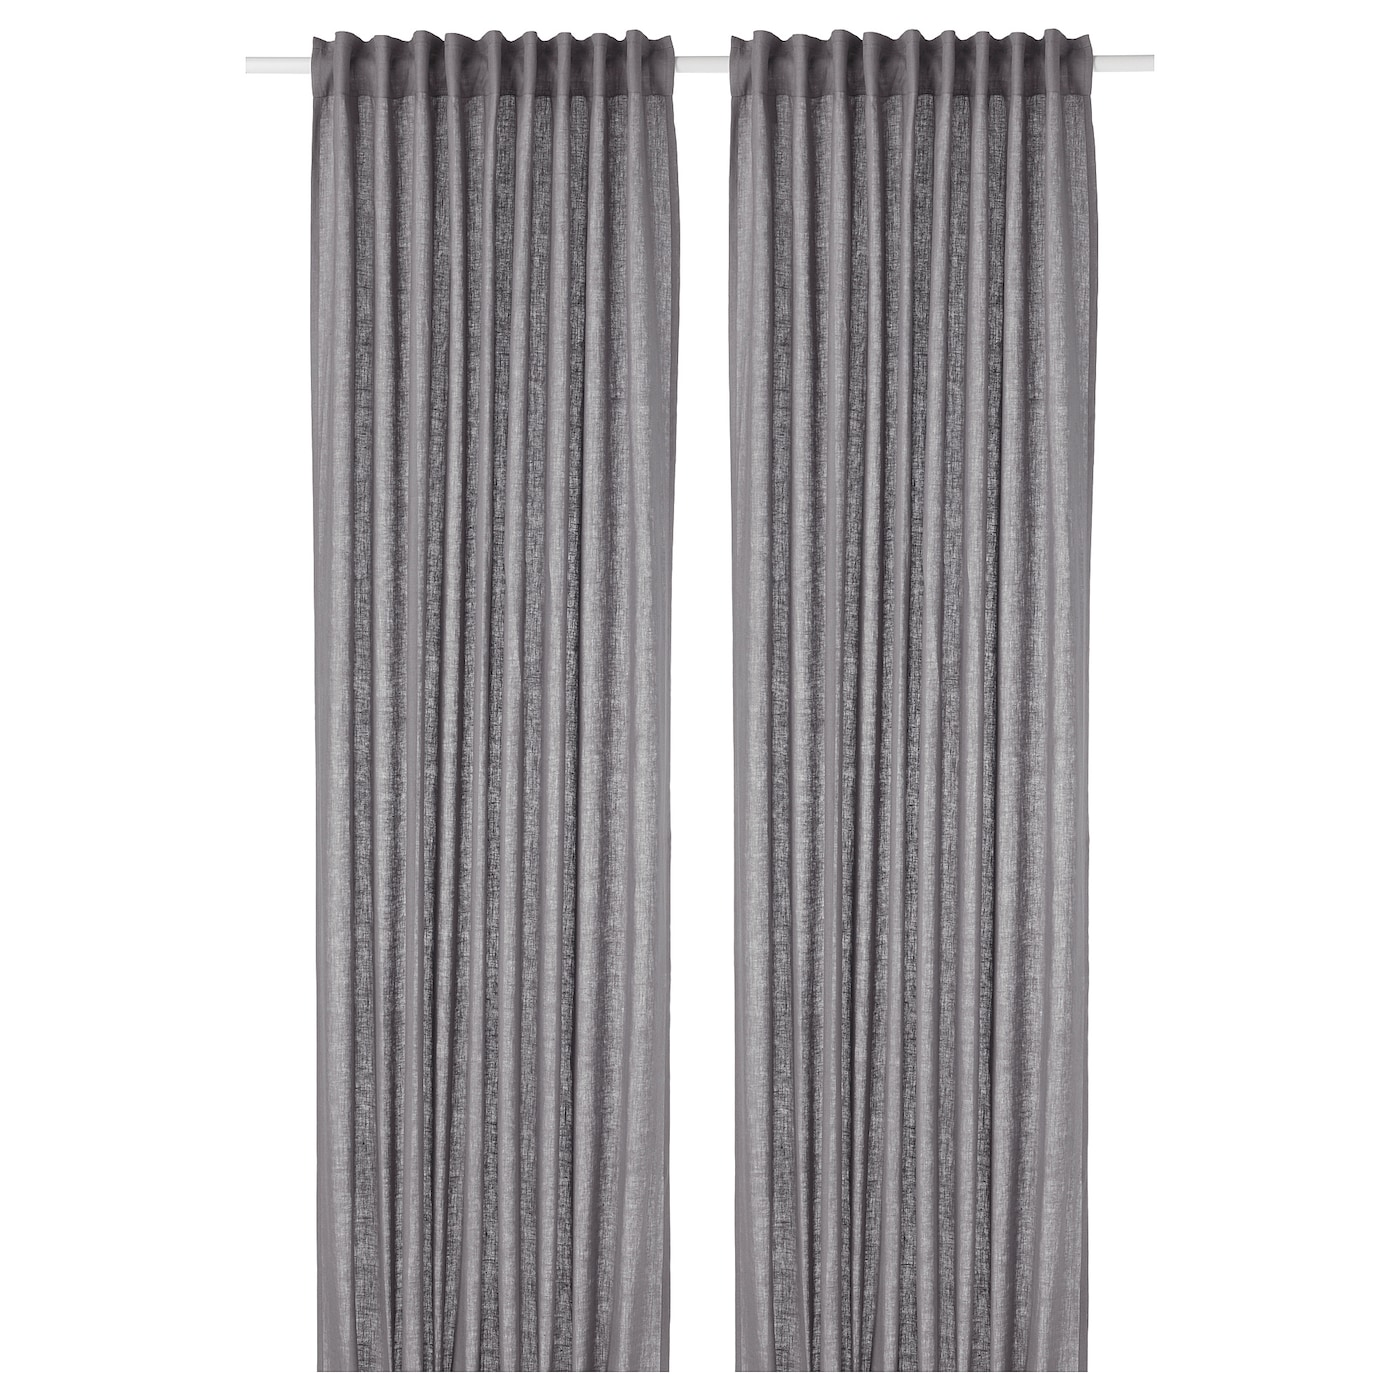 IKEA AINA curtains, 1 pair The curtains can be used on a curtain rod or a curtain track.